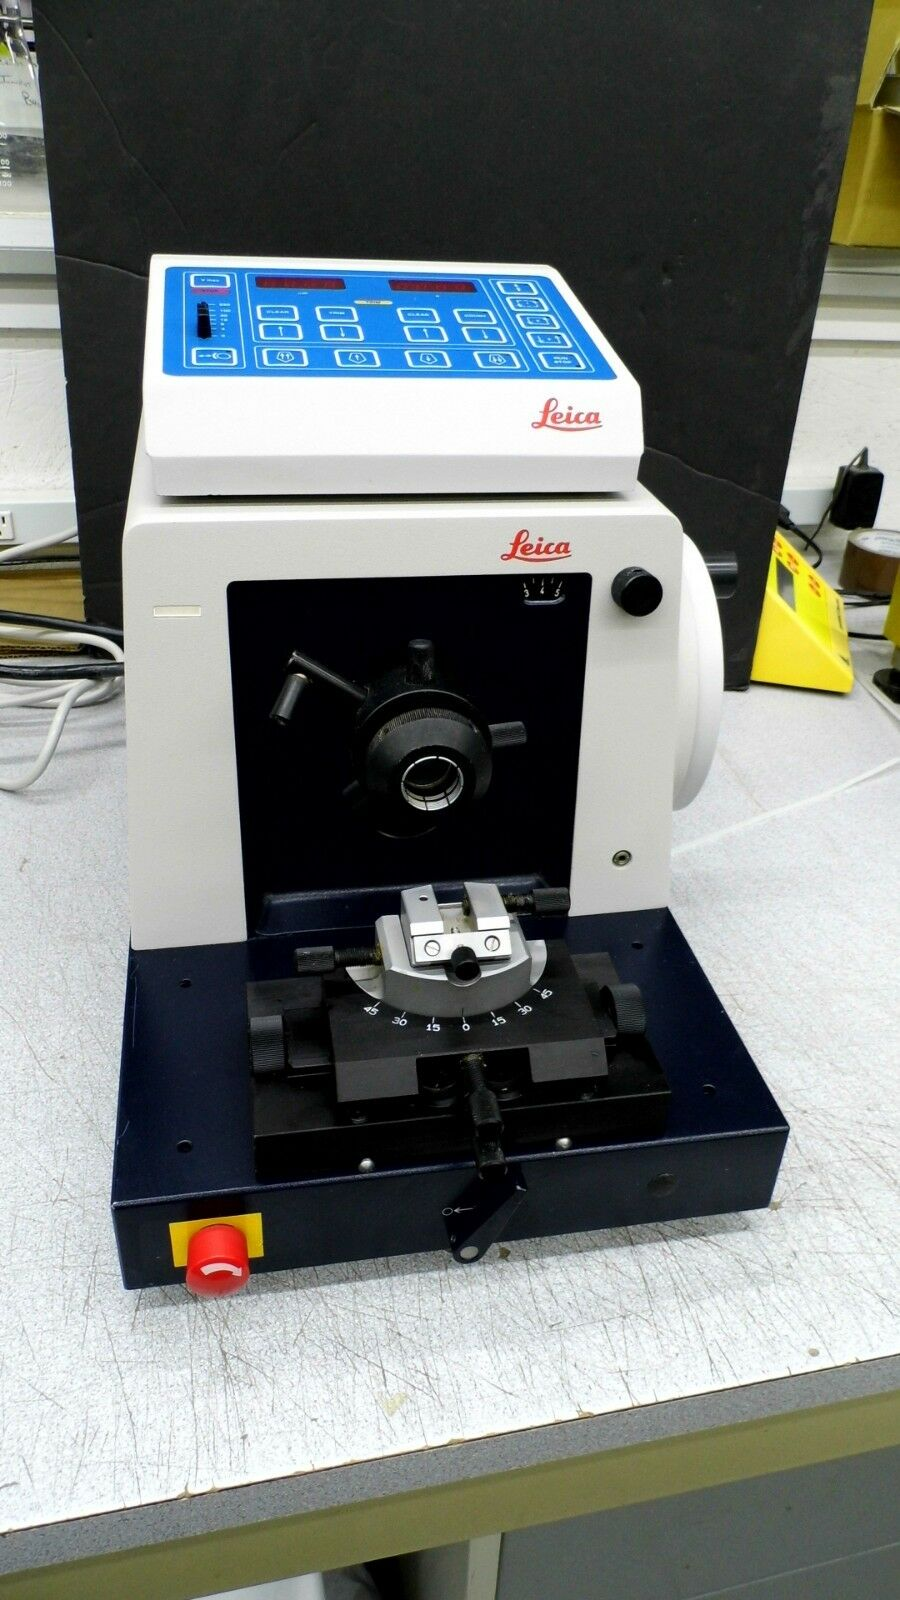 Jung Online Leica Model Jung Rm2065 Rotary Microtome With Controller